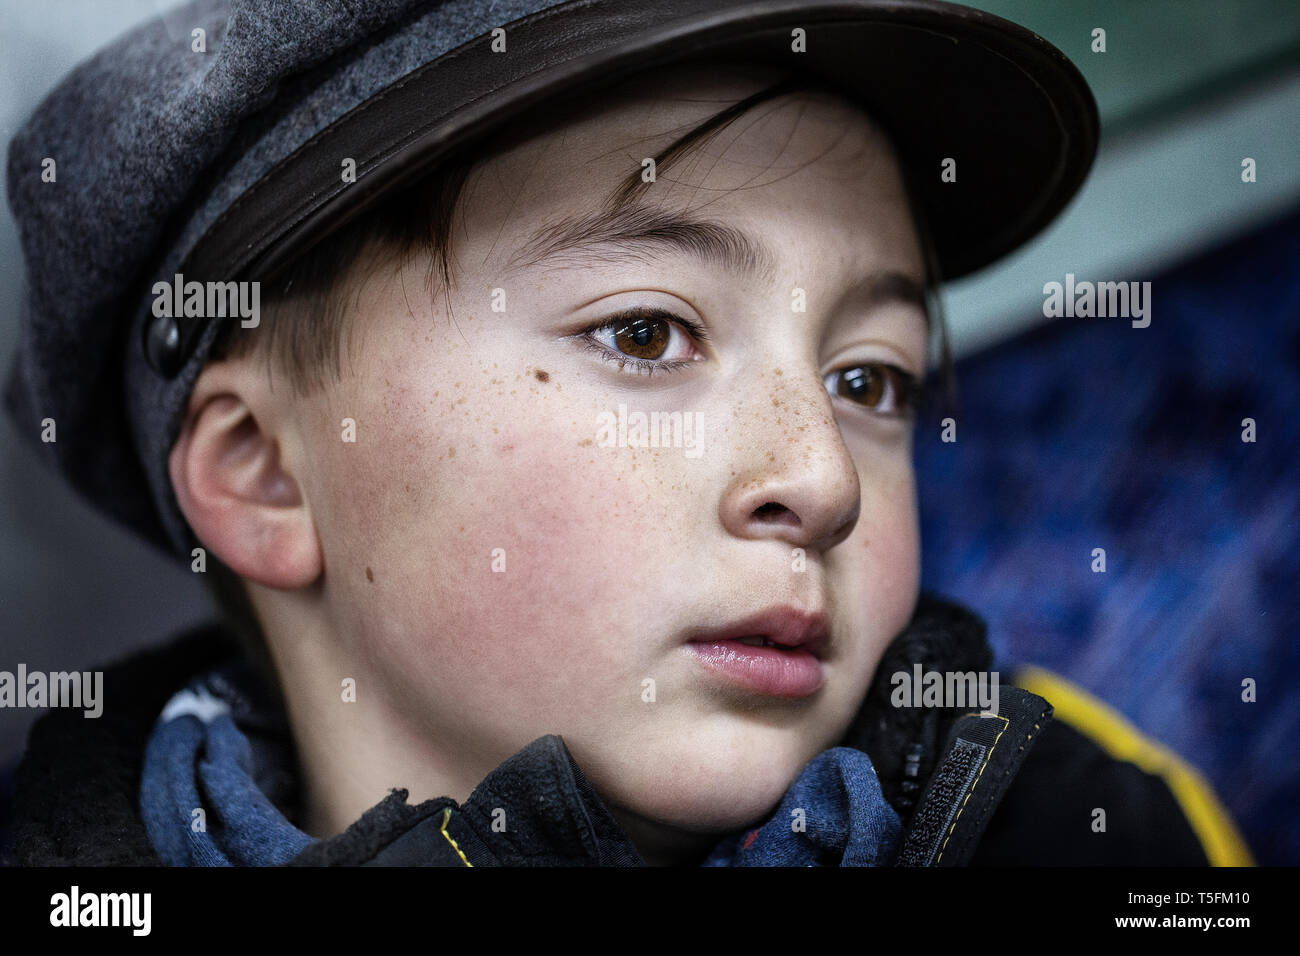 Mixed race Asian Caucasian boy in gray hat and blue scarf with red cheeks from the cold winter air Stock Photo